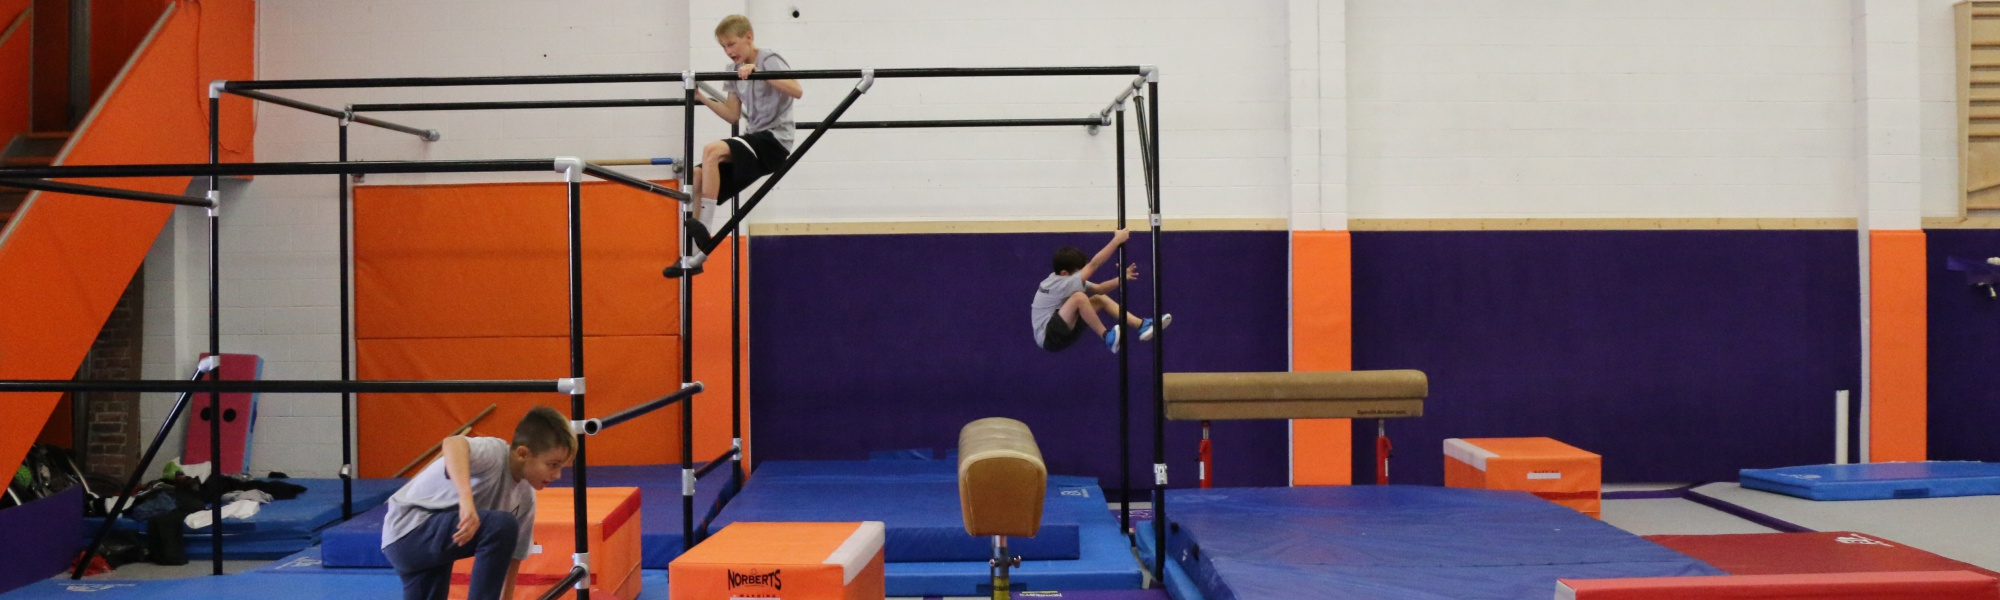 kelowna gymnastics drop-in teen and adult